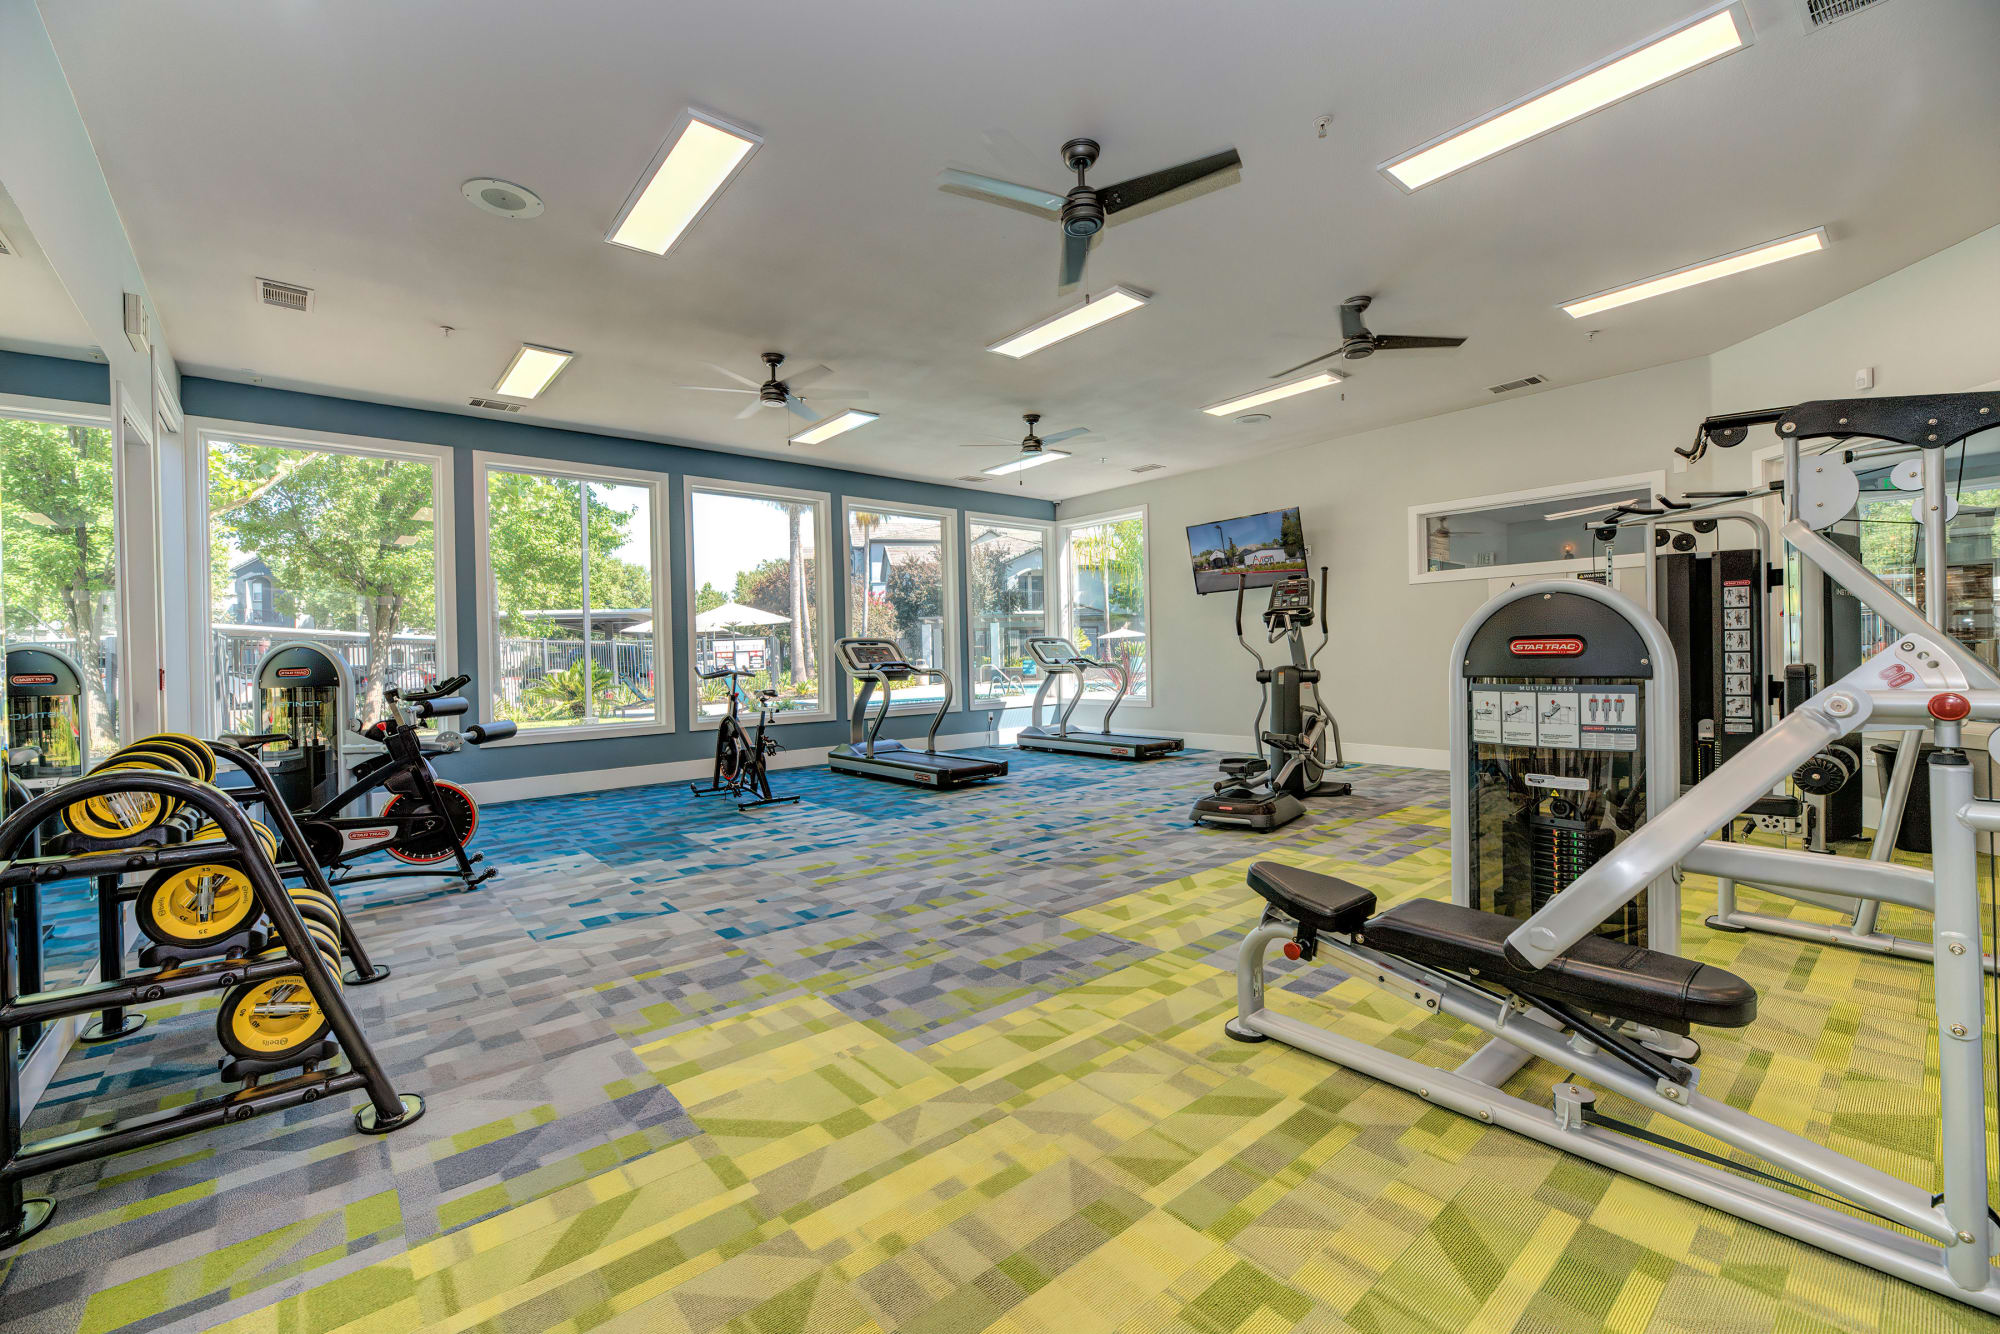 Community fitness center at Avion Apartments in Rancho Cordova, California